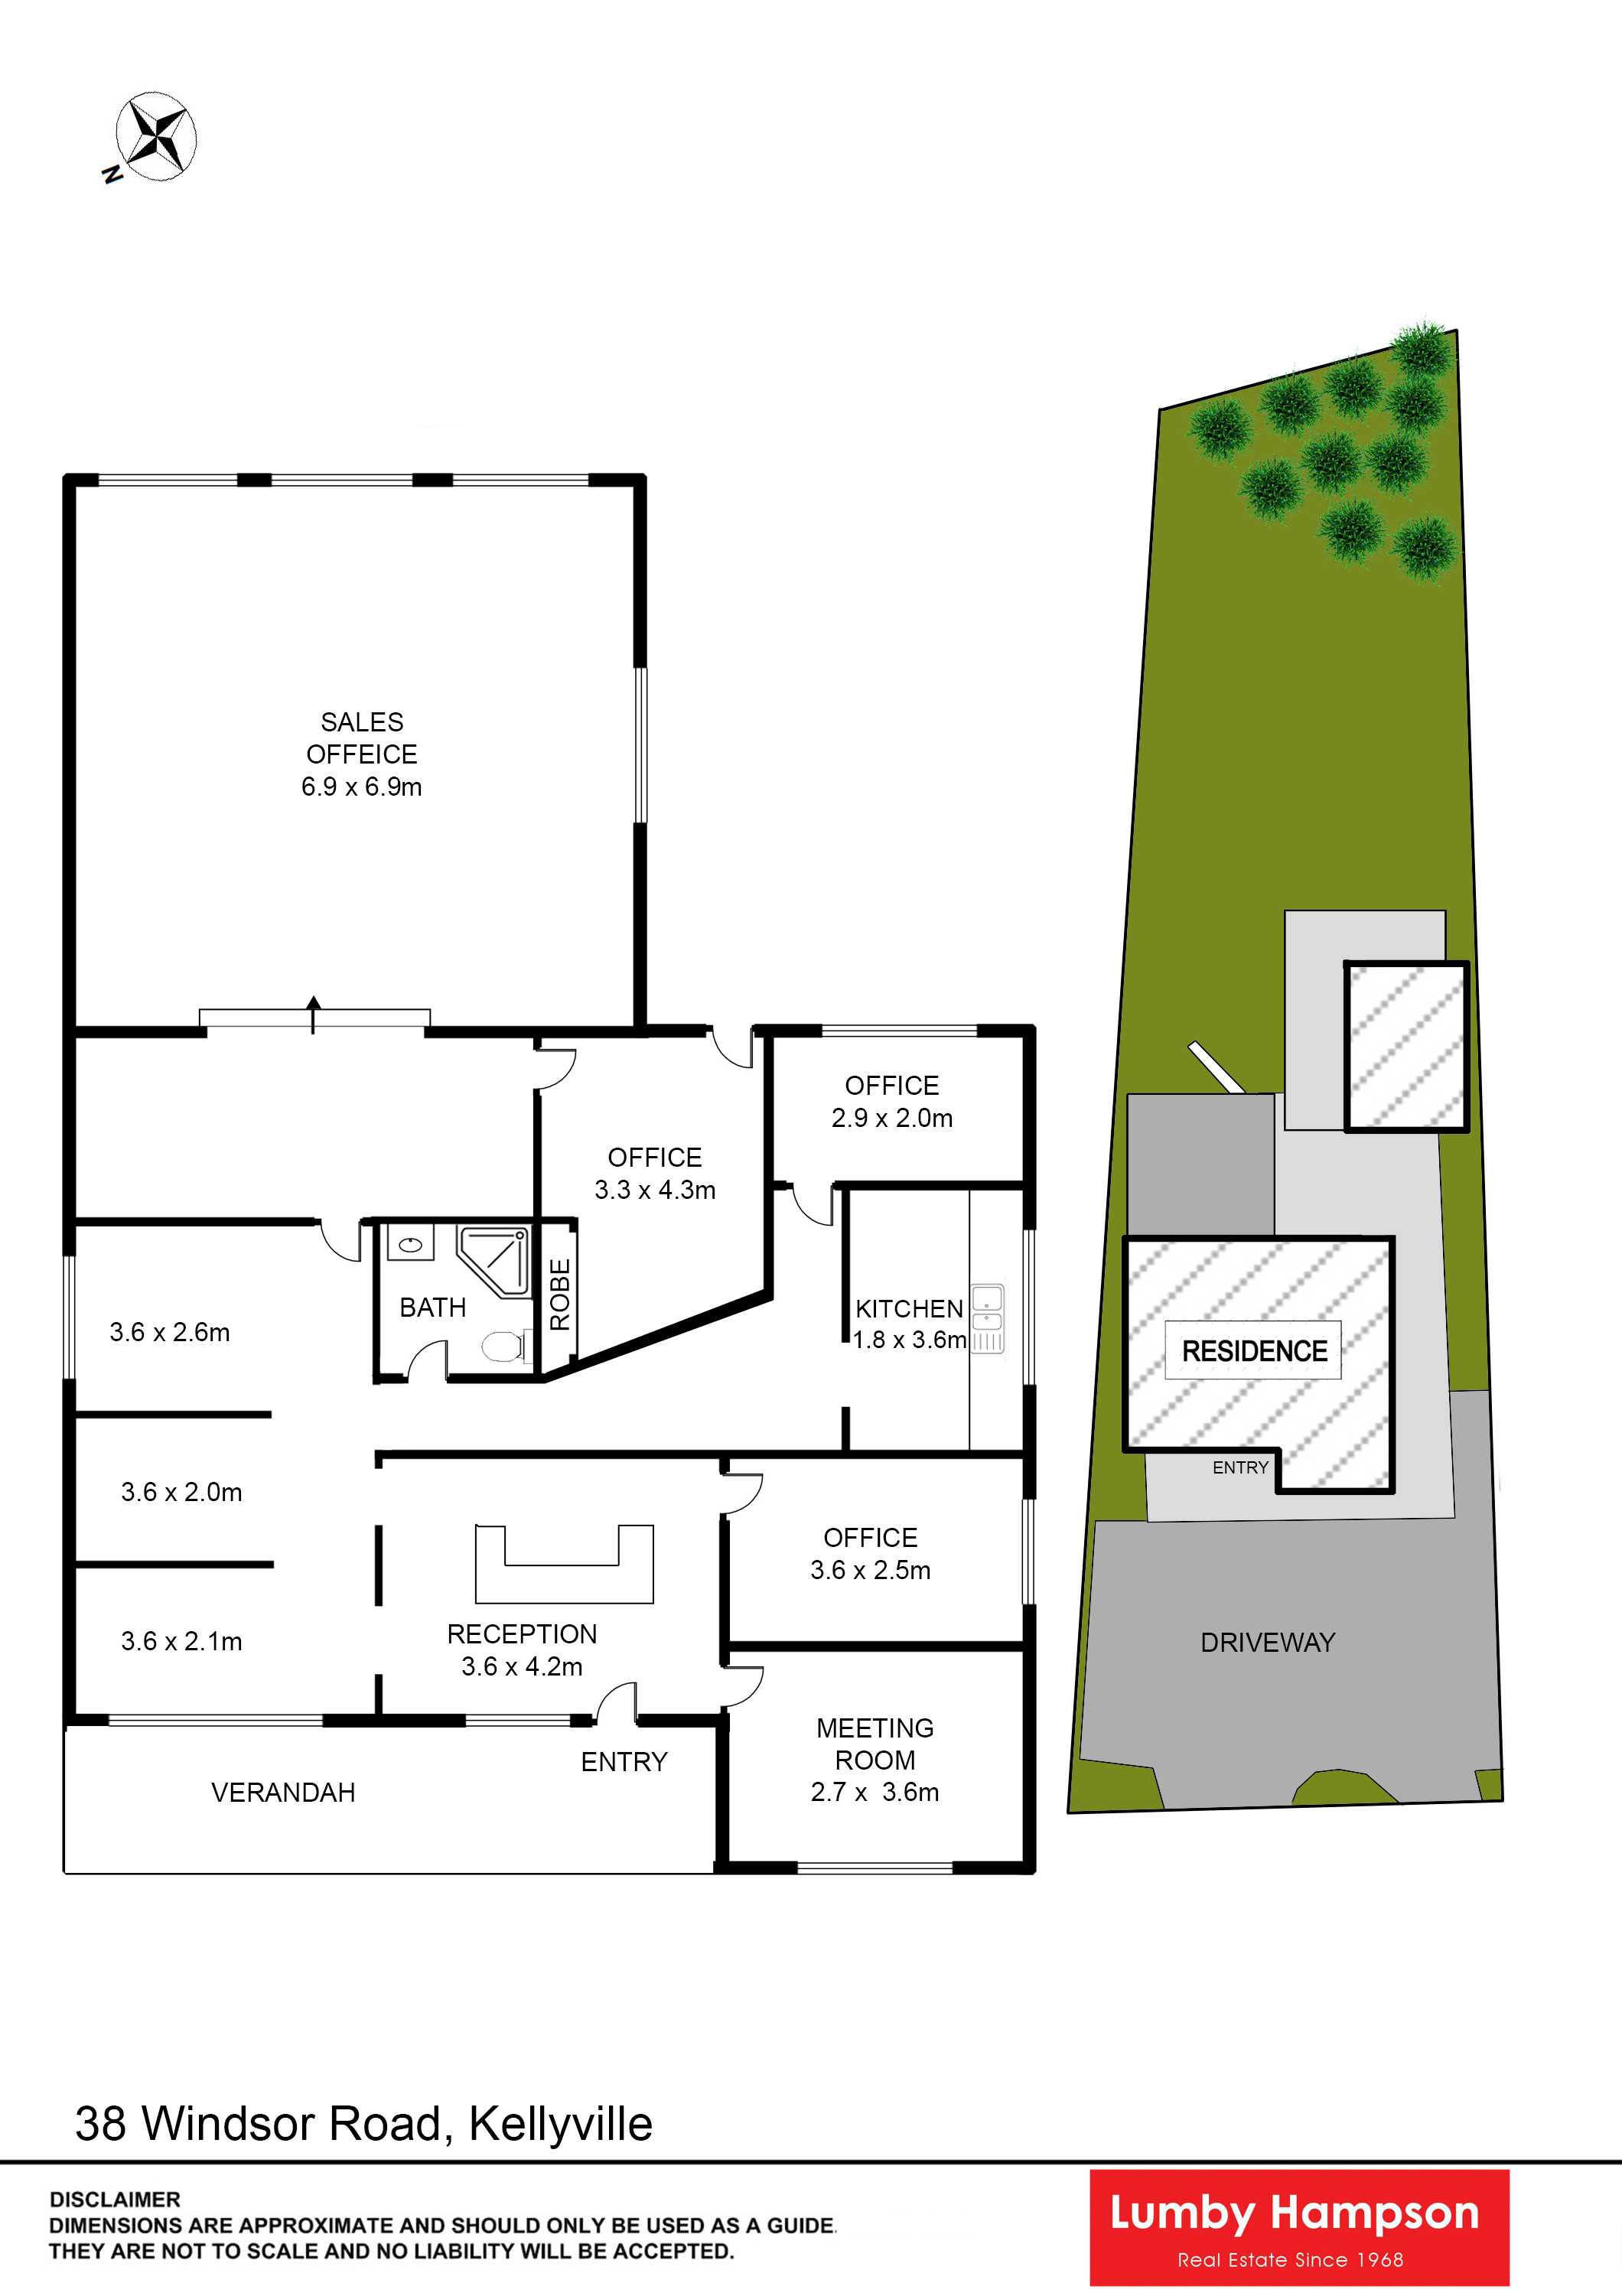 Lumby hampson 38 windsor road kellyville nsw 2155 for 15 st judes terrace dural